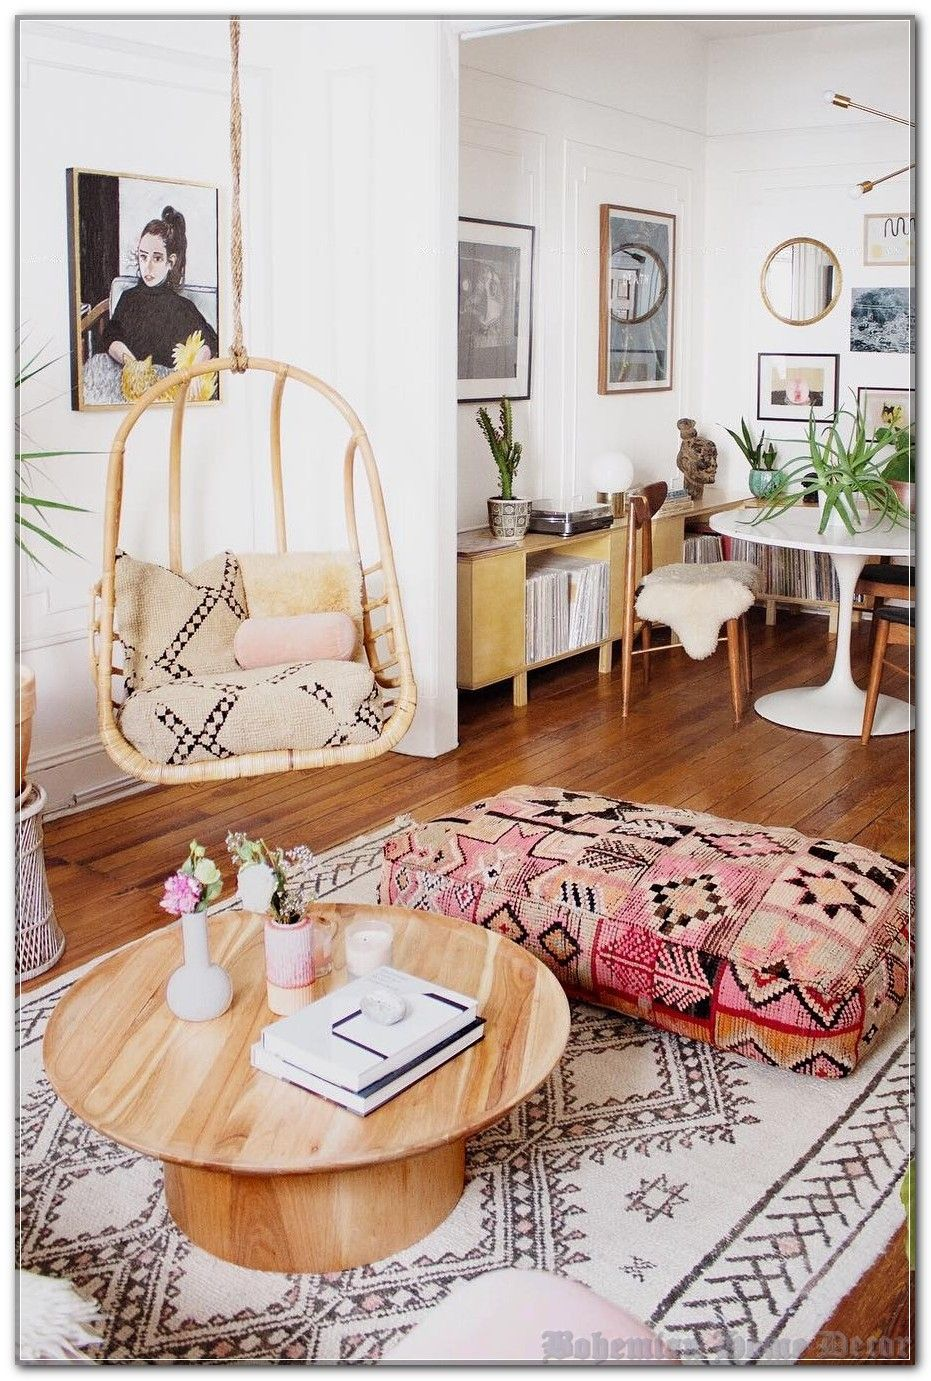 Bohemian Home Decor Is Crucial To Your Business. Learn Why!